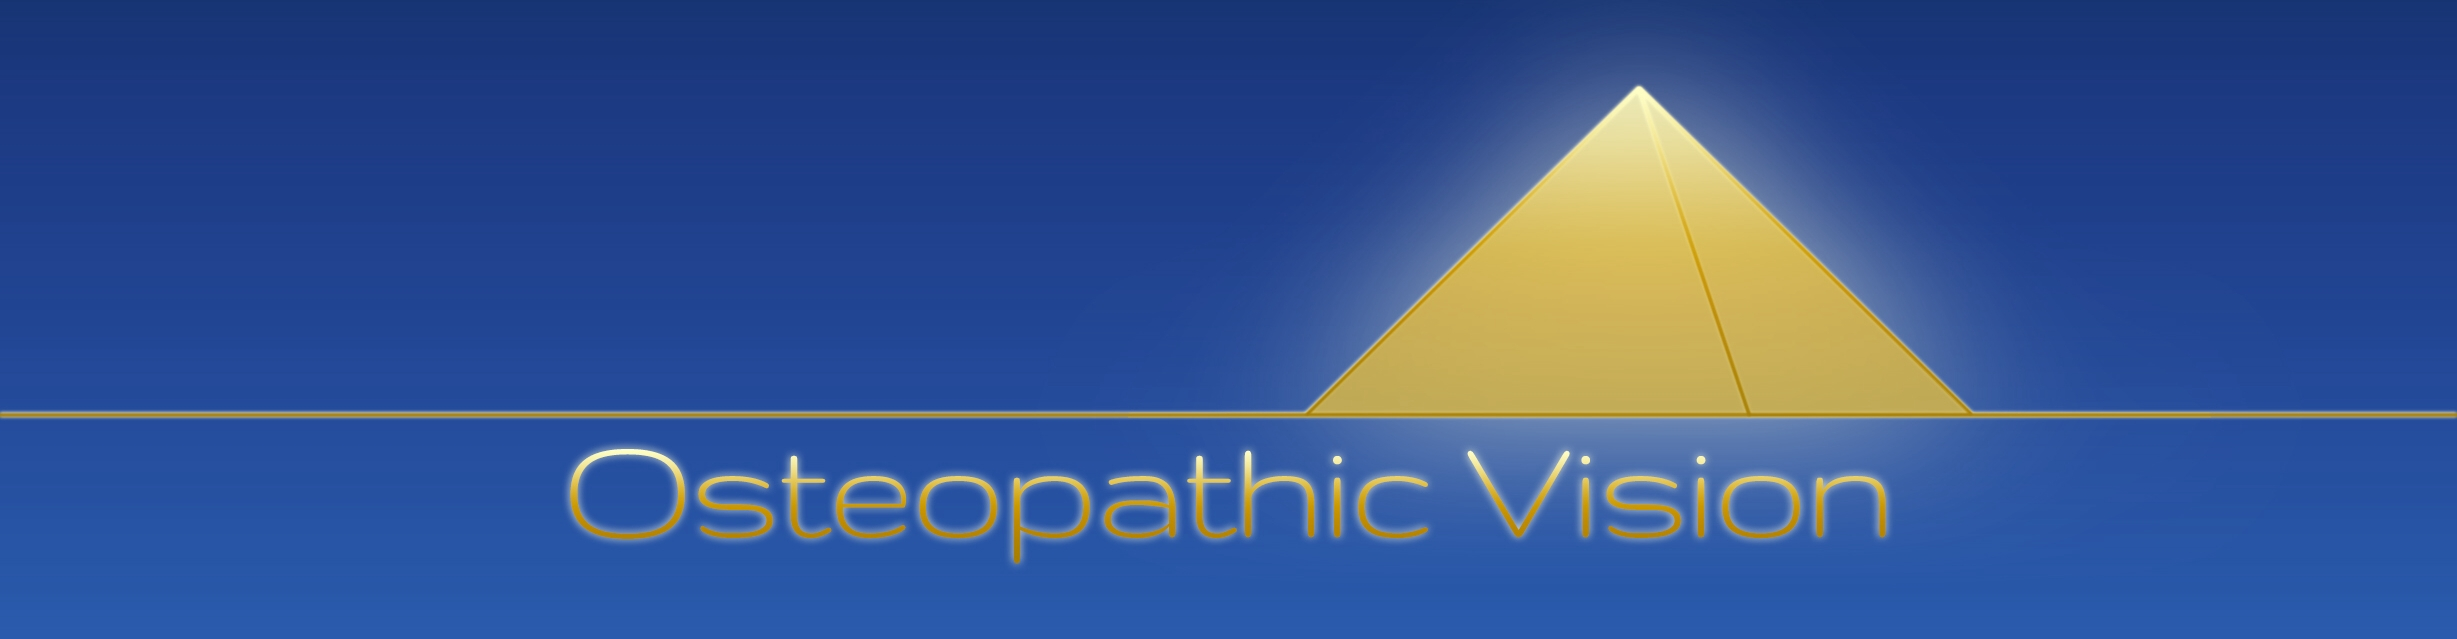 Osteopathic Vision